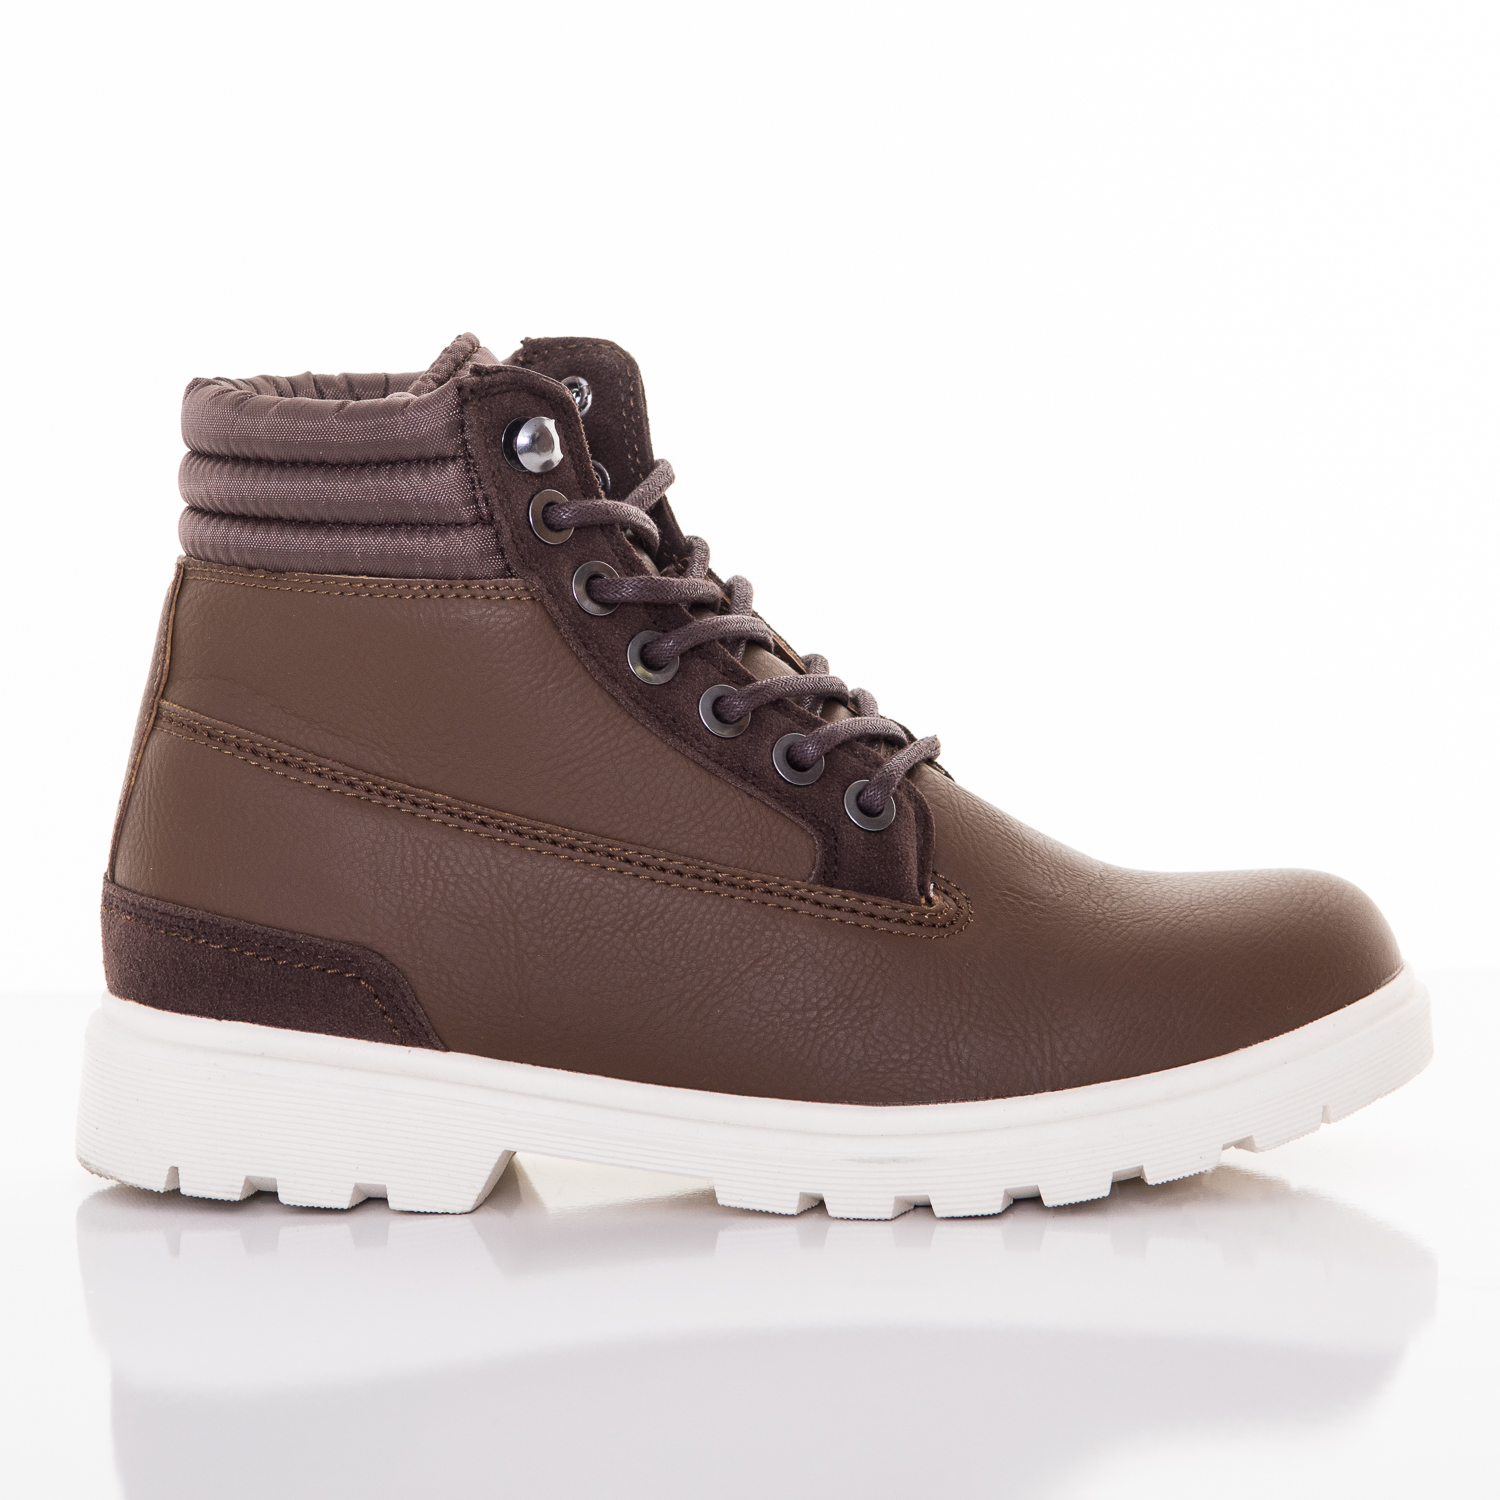 Zimná obuv Urban Classics Winter Boots Brown Darkbrown 39